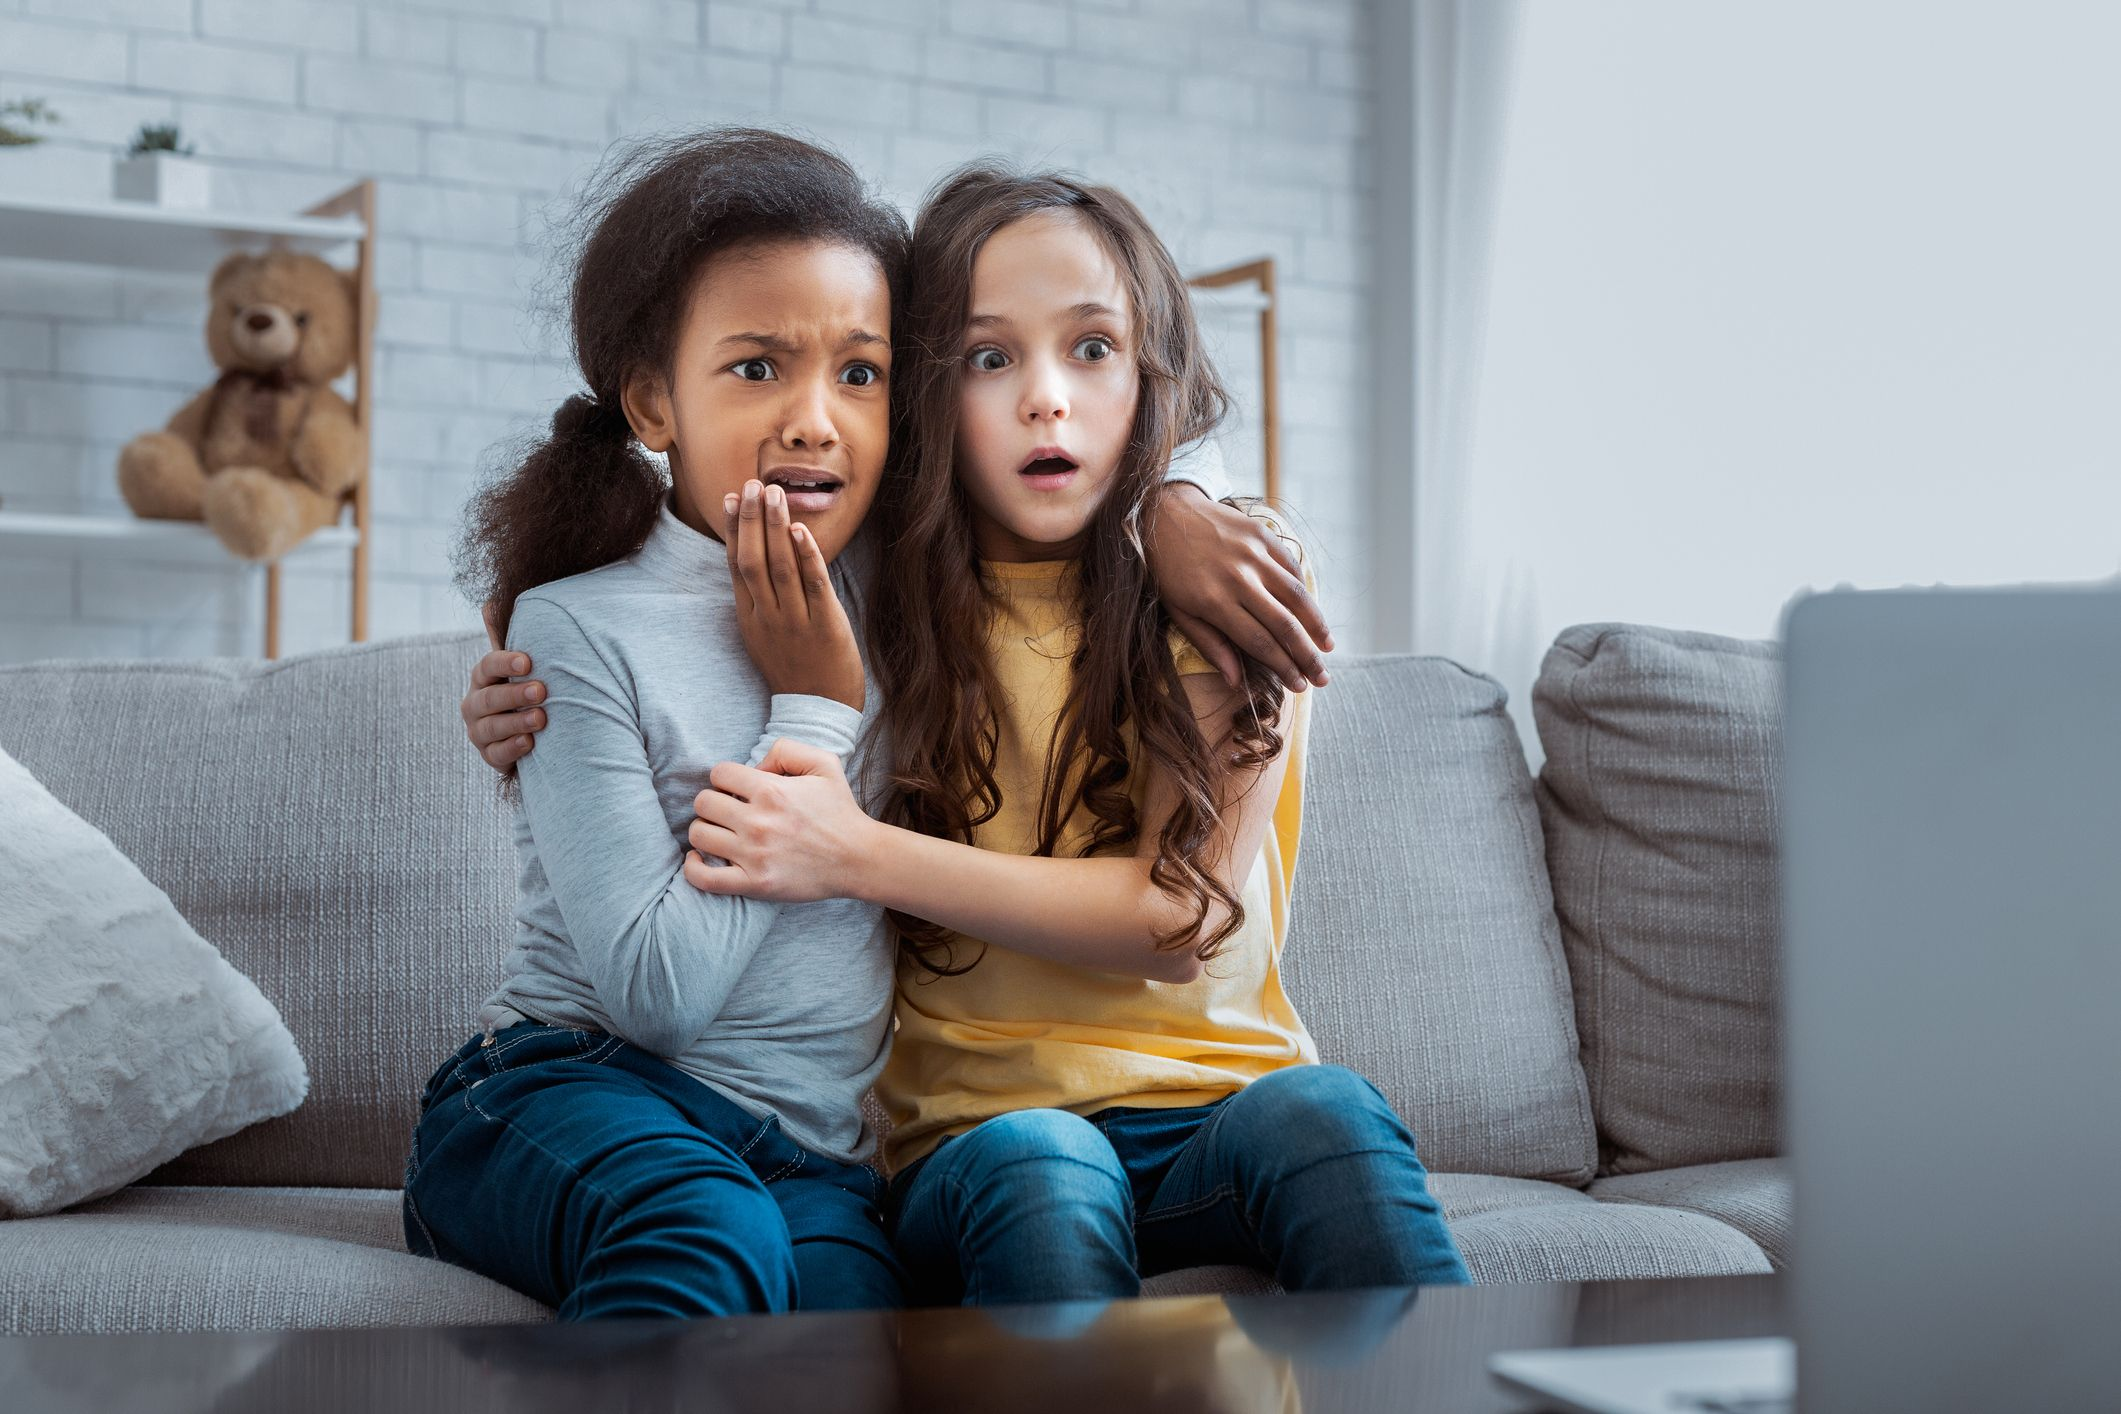 25 Best Scary Movies For Kids 2020 Top Family Horror Films